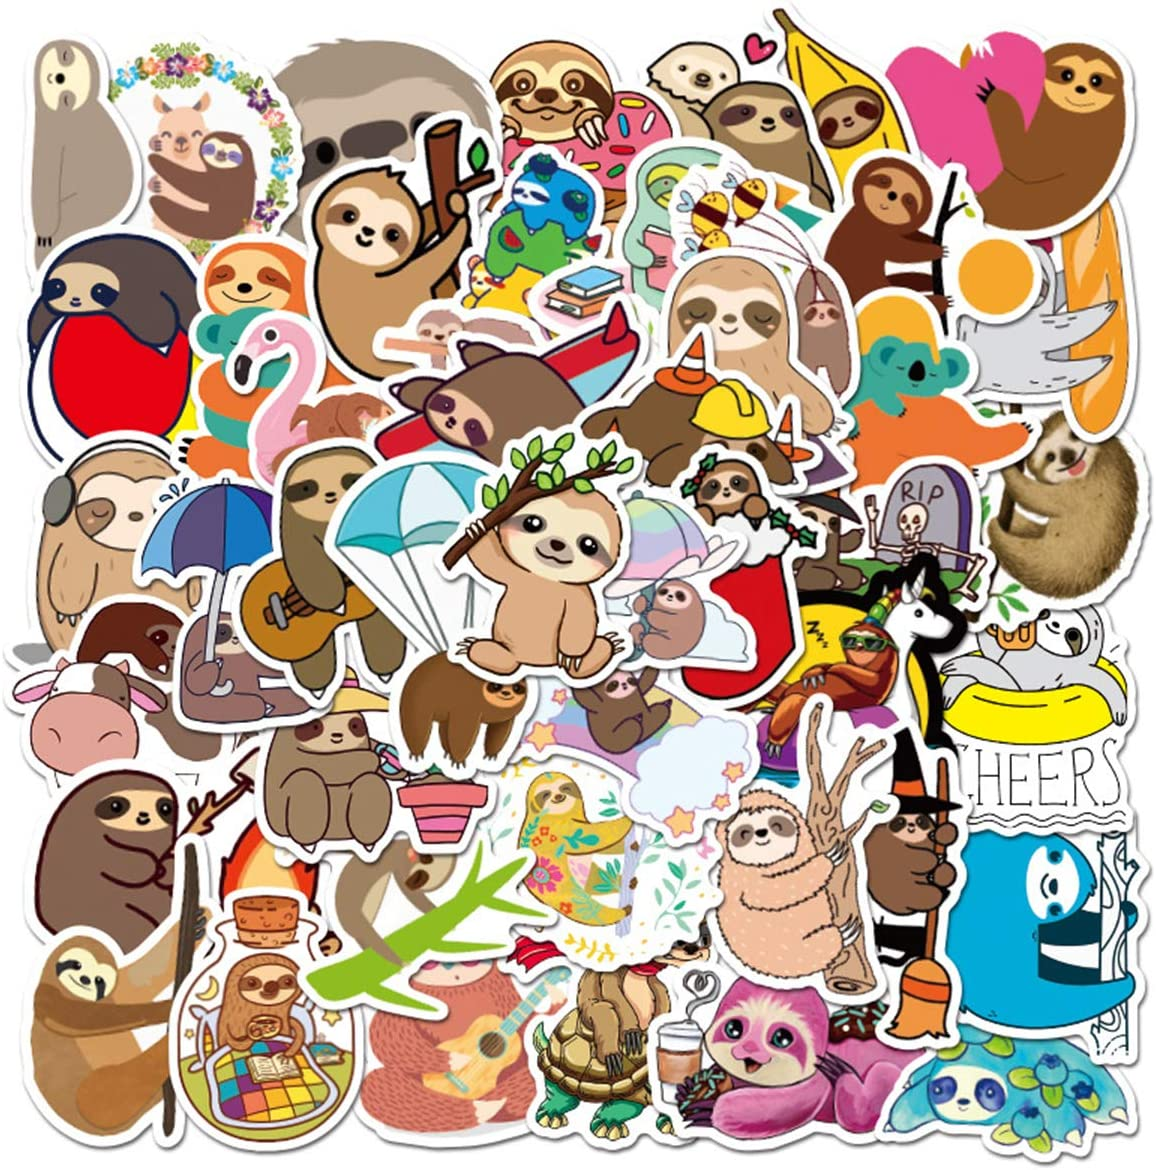 Sloth Stickers Pack for Water Bottle,Waterproof Vinyl Cute Stickers Perfect for Hydro Flask Laptop Phone Car Skateboard Travel Case Bicycle Bumper Snowboard Decor (Sloth 50 Pcs)